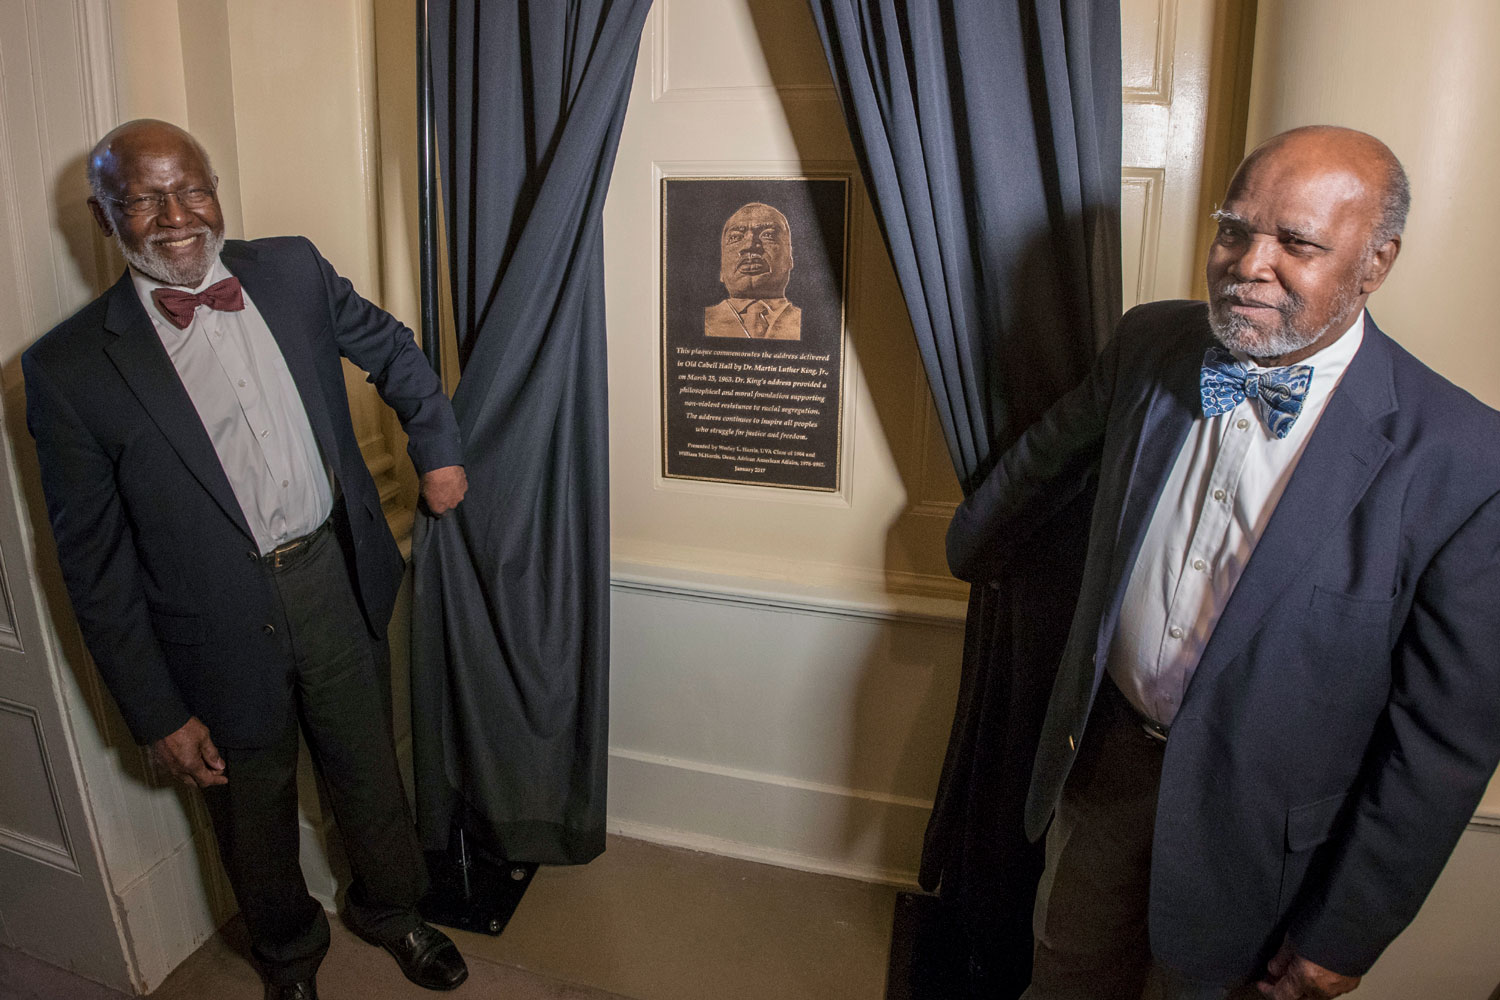 Last January, brothers Wesley and William Harris presented a plaque commemorating Rev. Dr. Martin Luther King Jr.'s appearance at UVA March 25, 1963.